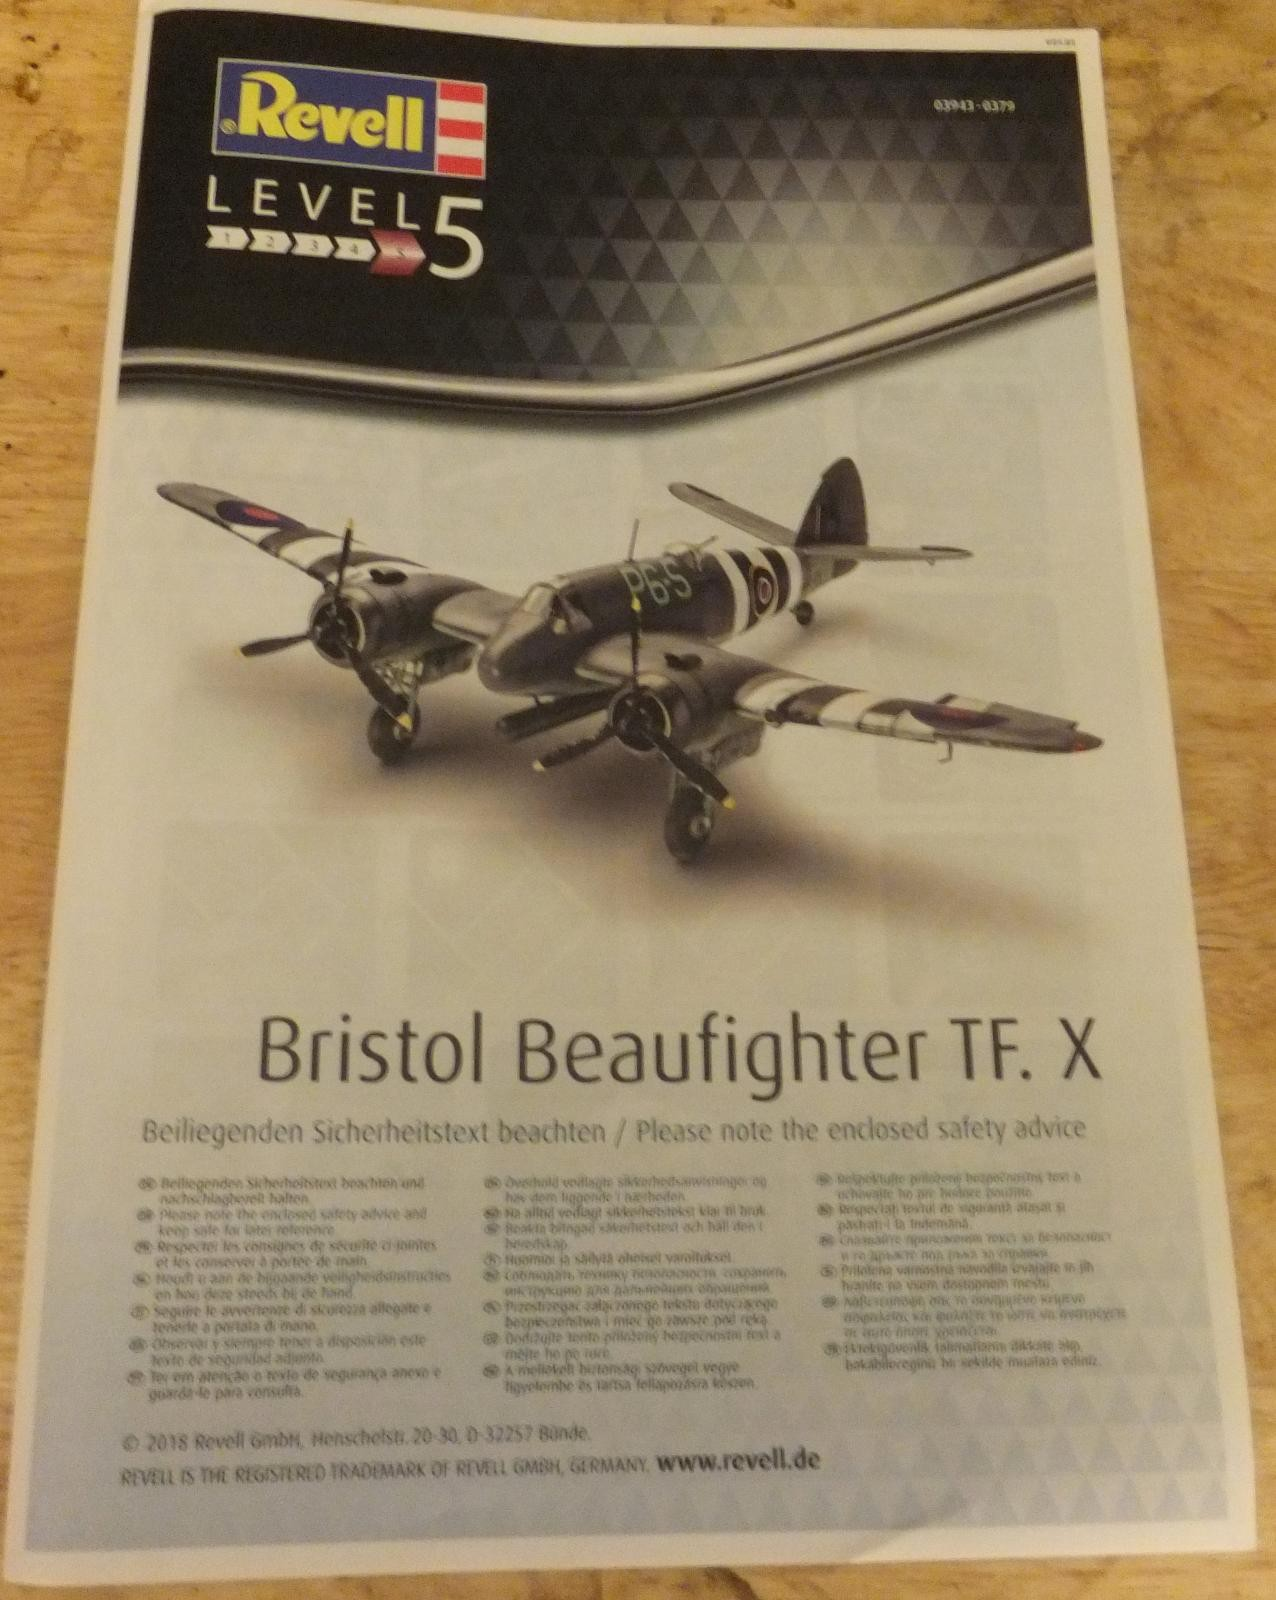 Revell 1/48 Bristol Beaufighter TF X In-box Review pt 1